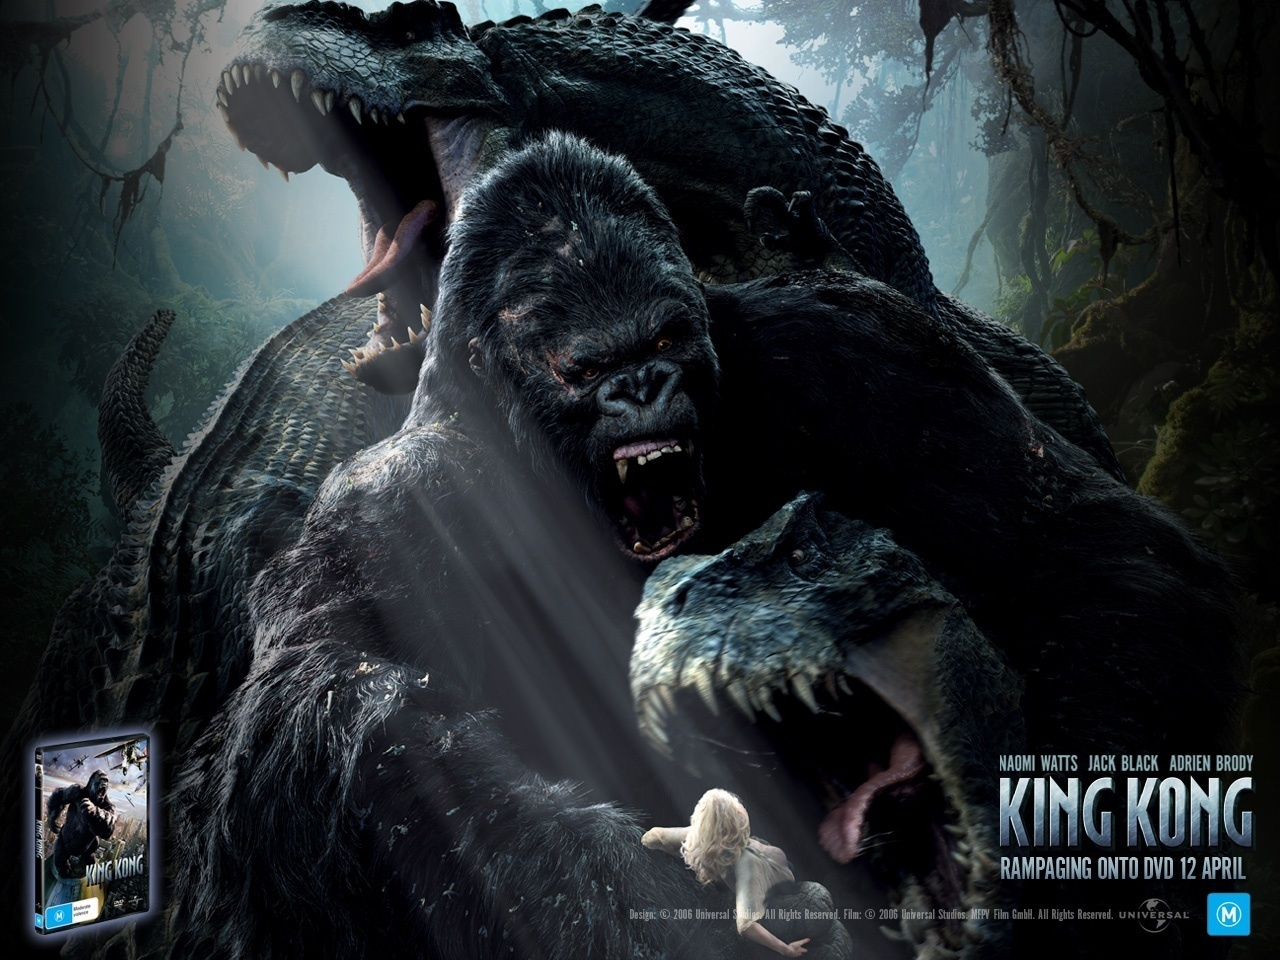 King kong images king kong 2005 hd wallpaper and - King kong 2005 hd wallpapers ...